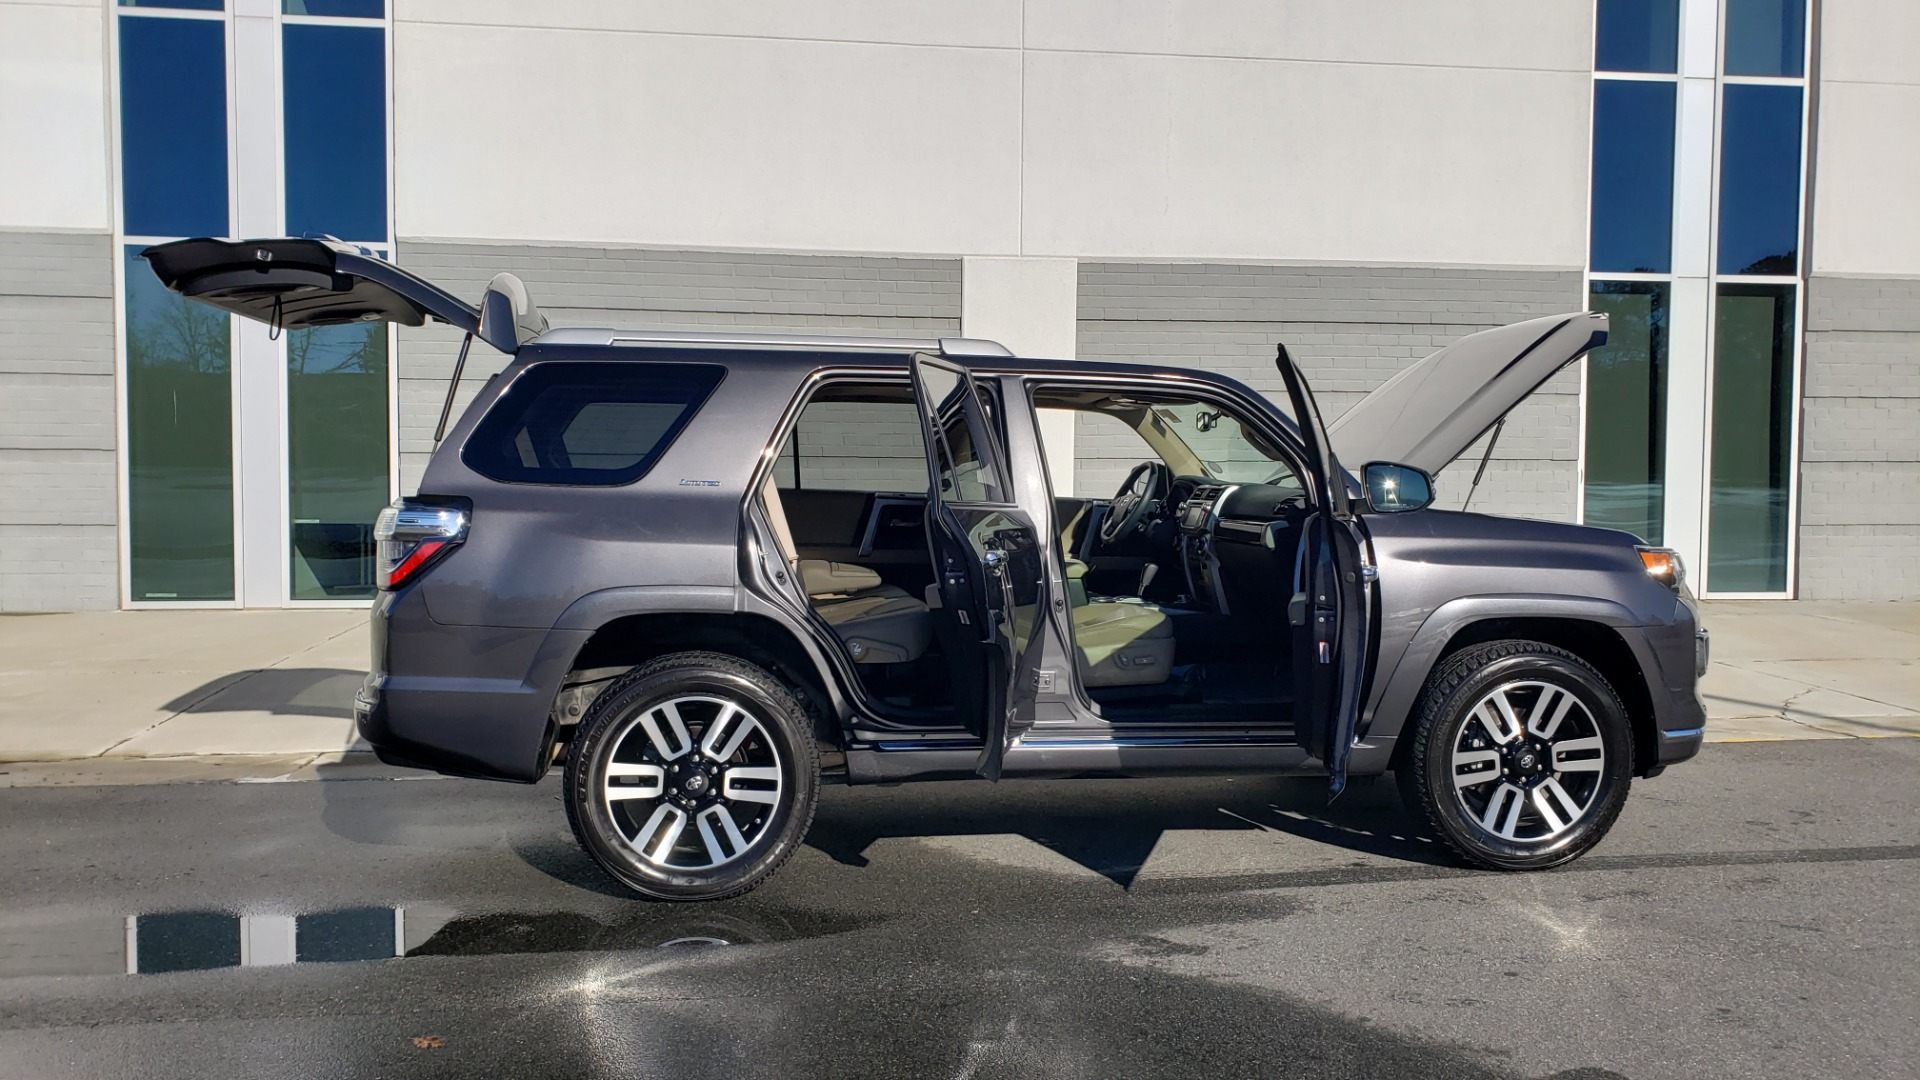 Used 2018 Toyota 4RUNNER LIMITED 4X4 / 4.0 V6 / AUTO / NAV / SUNROOF / REARVIEW for sale Sold at Formula Imports in Charlotte NC 28227 11